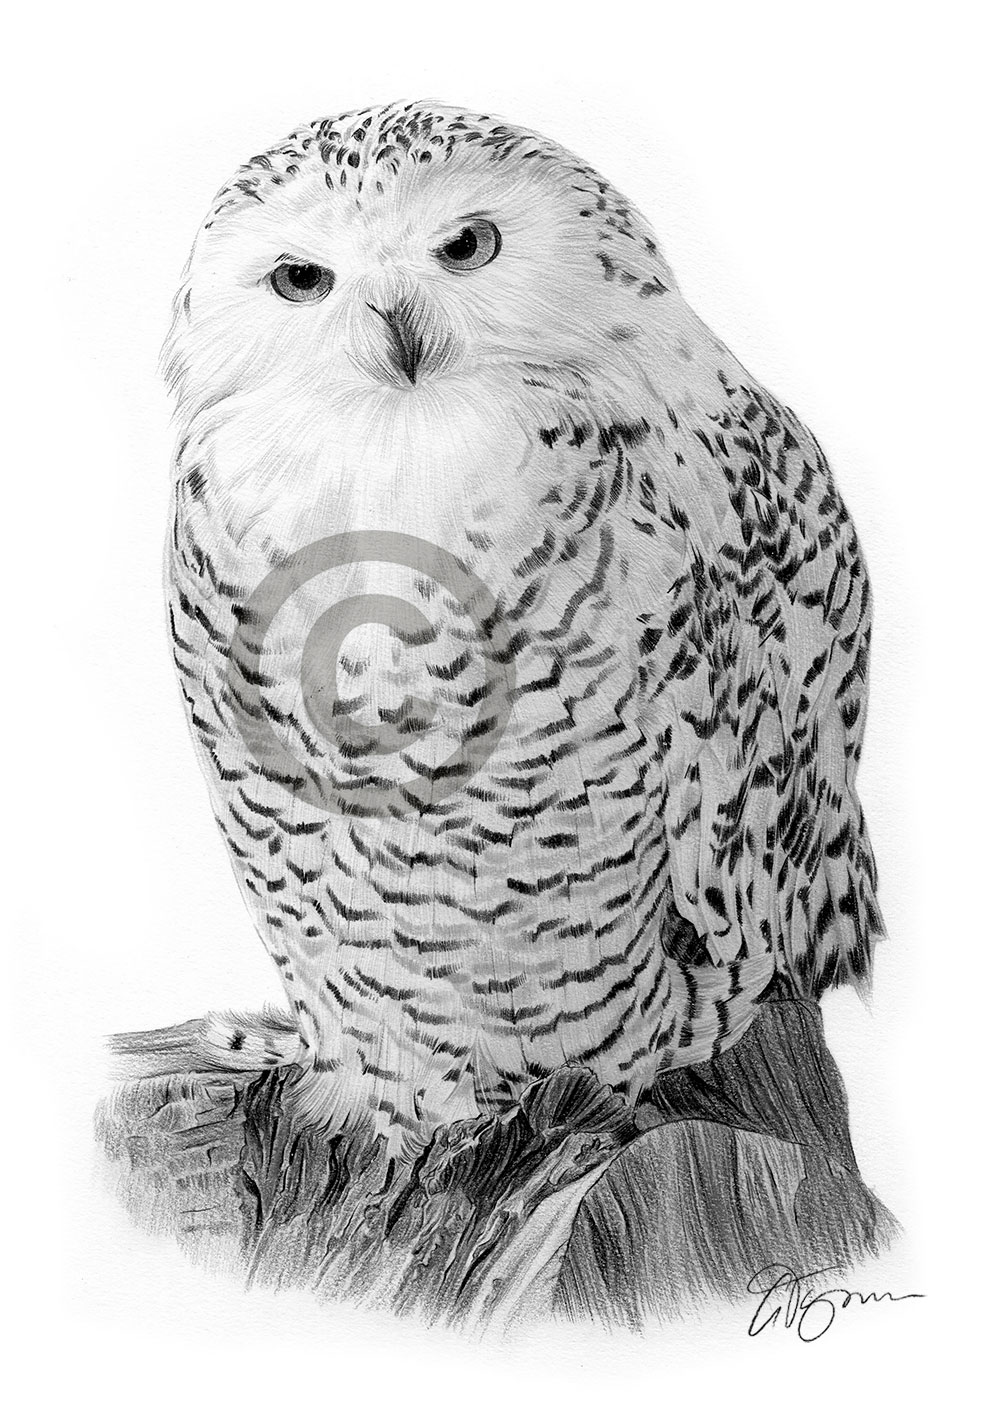 snowy owl pictures to print snowy owl fine art print by luke kanelov unframed owl to print pictures snowy